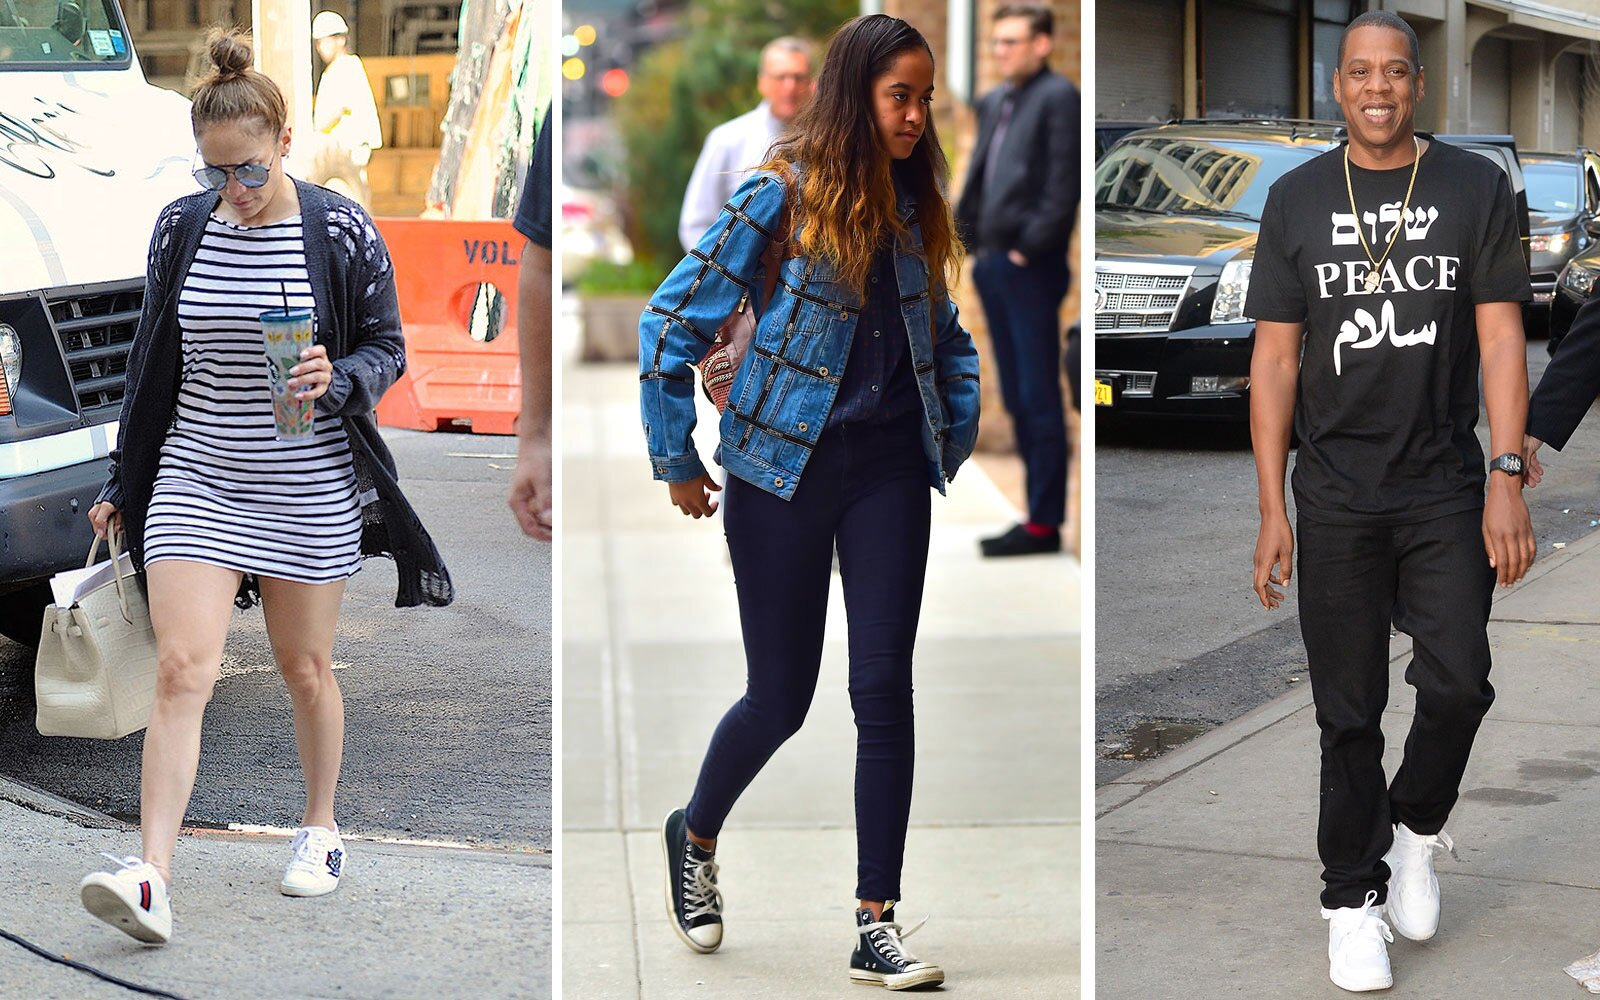 f5195267e17 14 Sneakers Celebrities Love to Wear on the Go | Travel + Leisure